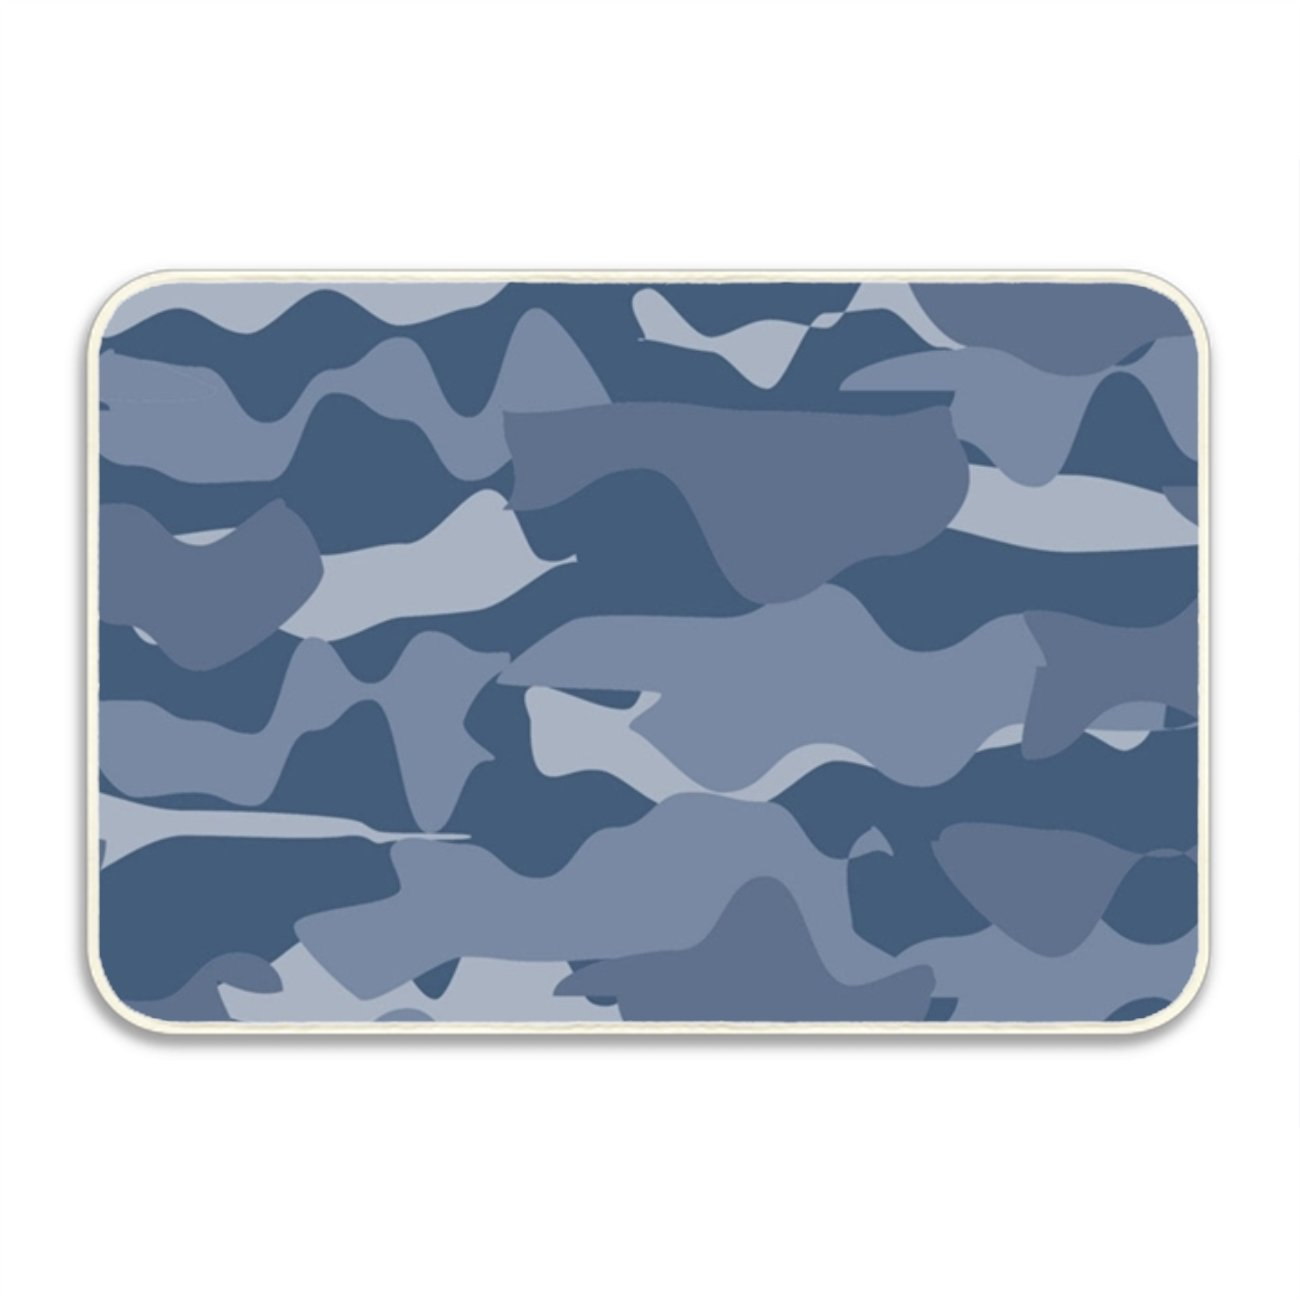 WYIOU Simple Shoe Floor Mat Military Blue For School Printed